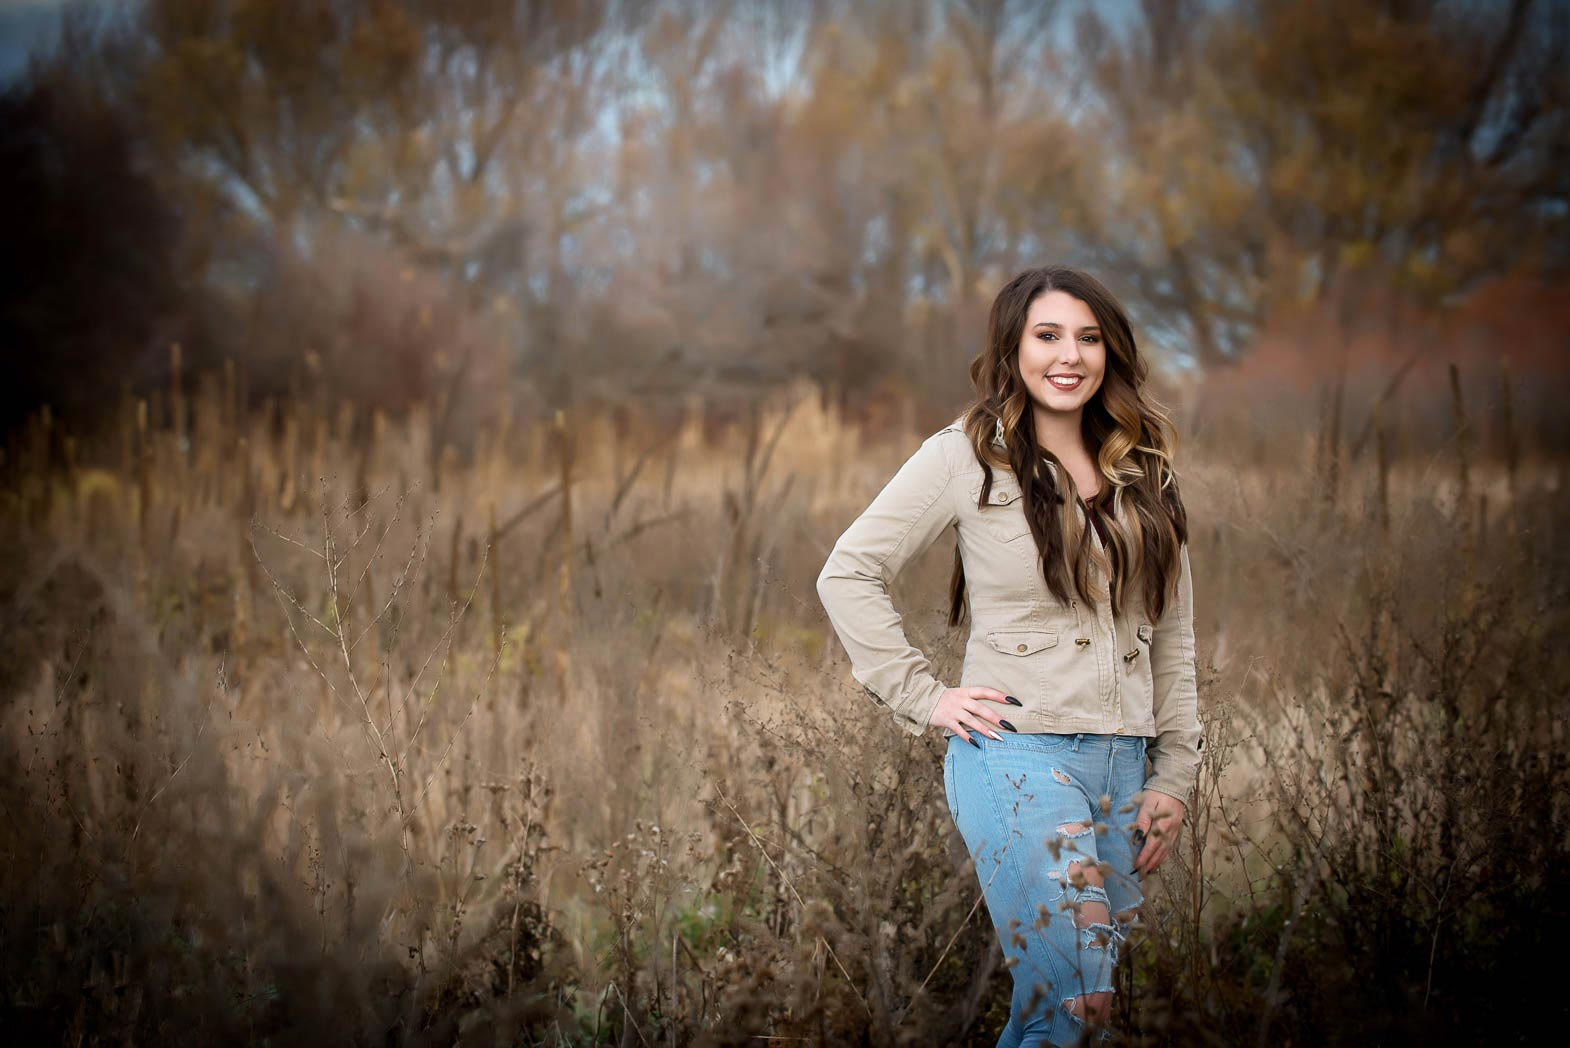 senior picture adventure with girl standing in grassy field